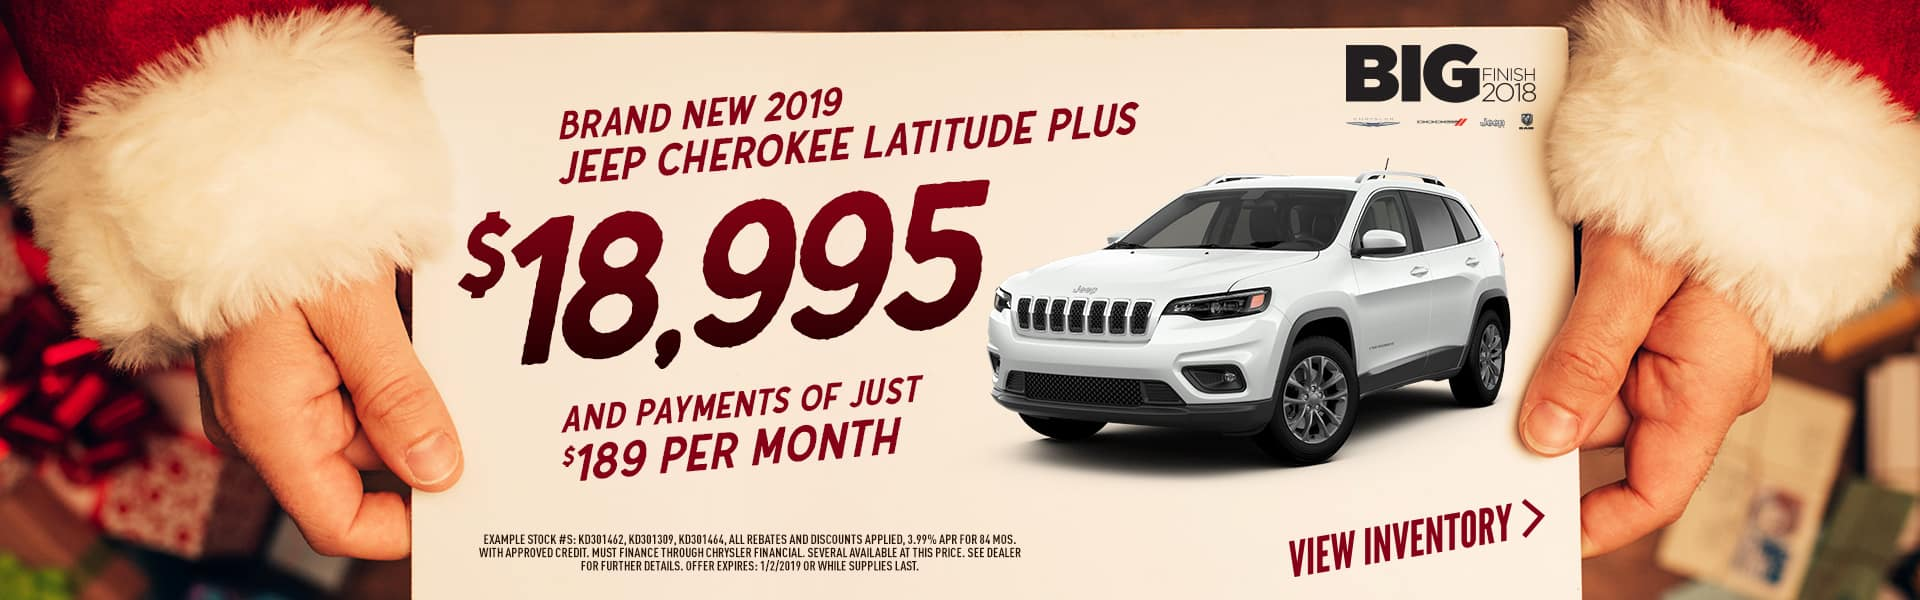 2019_jeep_cherokee_latitude_plus